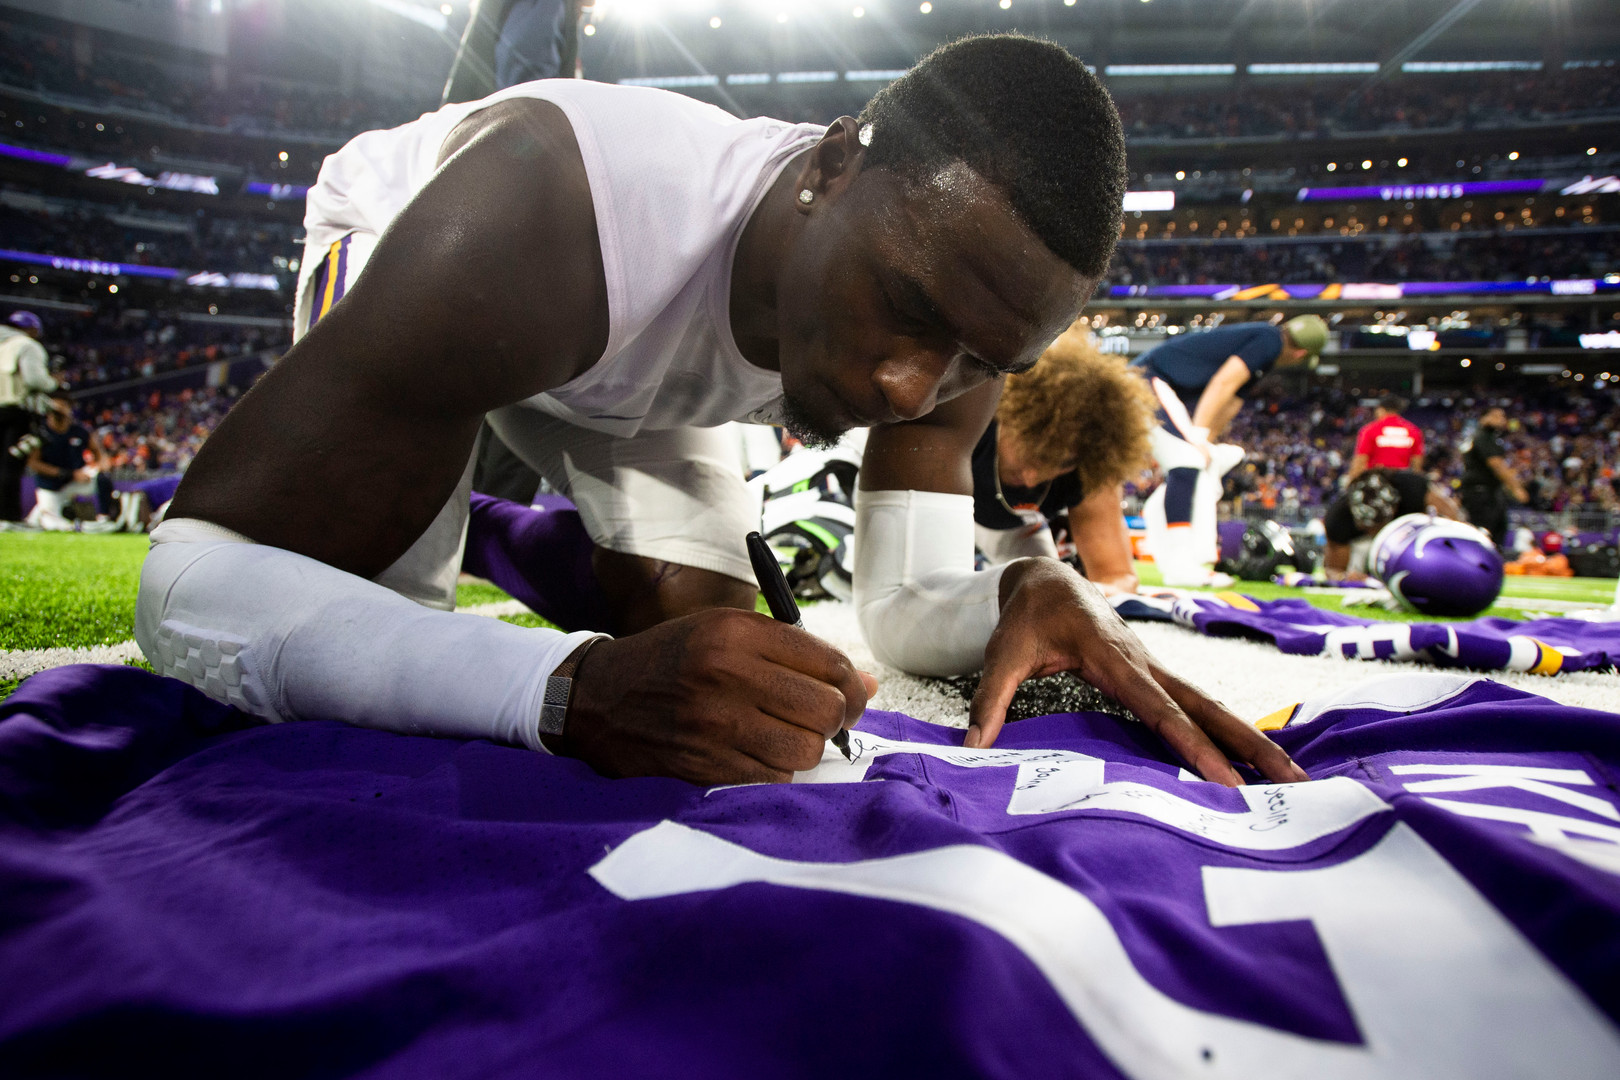 Minnesota Vikings safety Jayron Kearse (27) signs his jersey after defeating the Broncos at U.S. Bank Stadium on Sunday, Nov. 17, 2019. The Vikings won with a final score of 27-23.